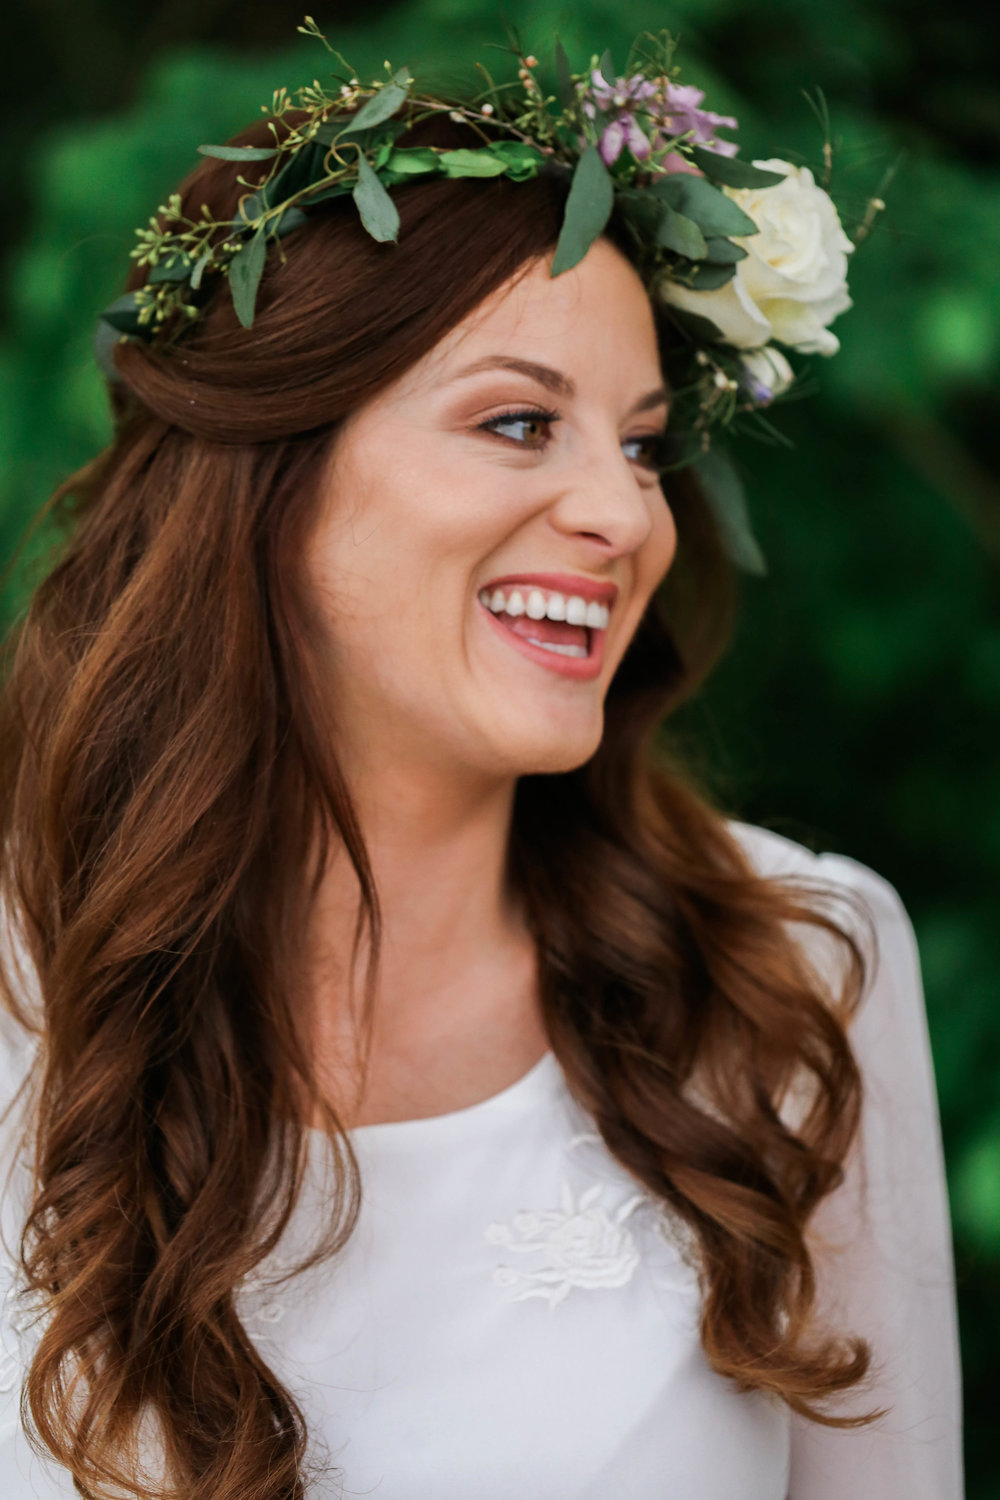 Bridal Shower Inspiration | Flower Crowns and Cocktails | Lavender and Lemon